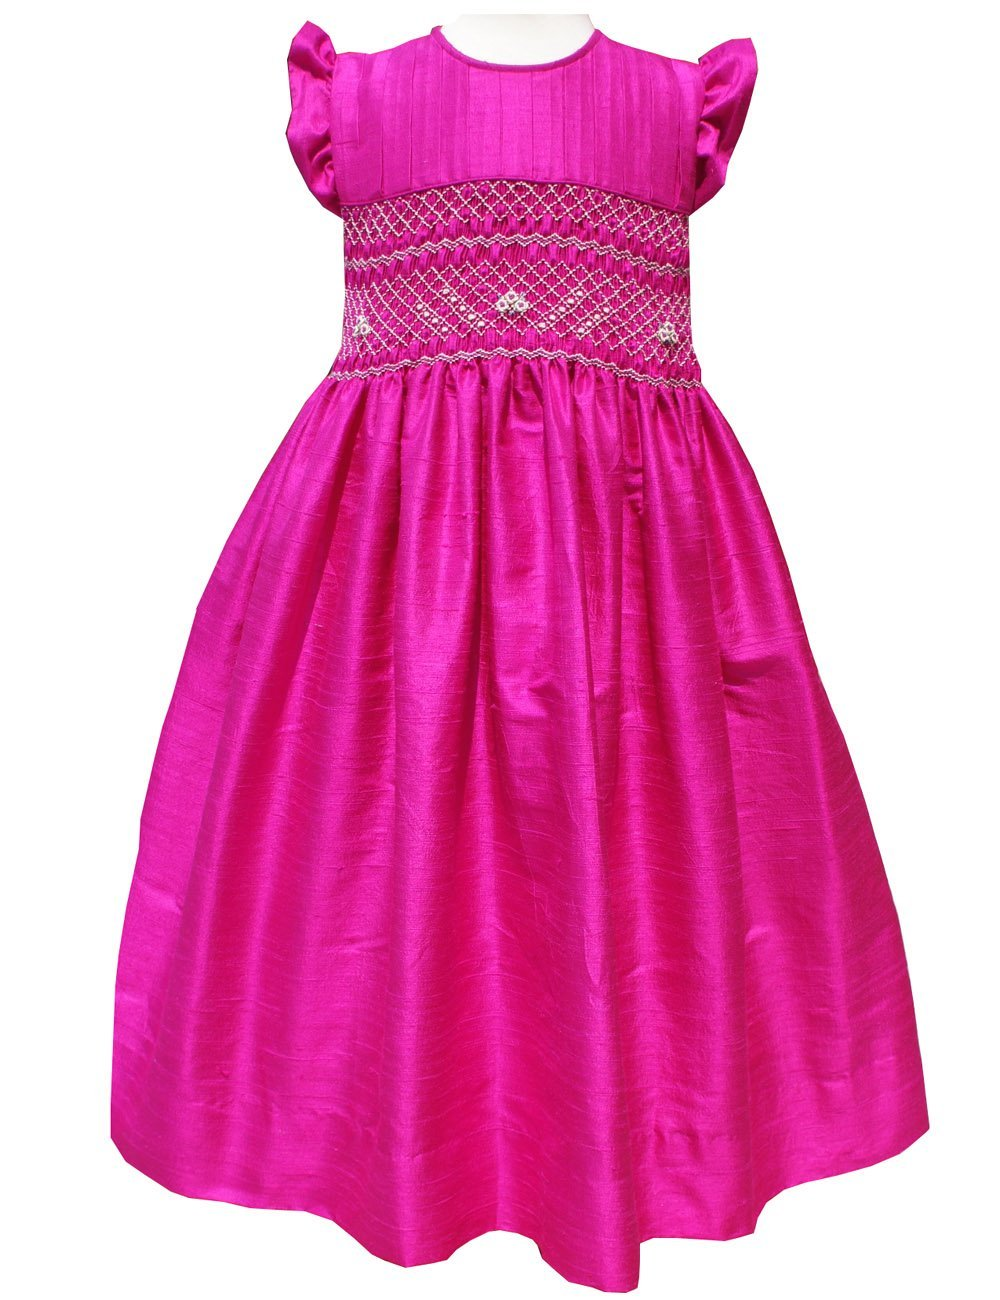 Flower Girls Silk Dress Hot Pink Color for Special Occasions Weddings Birthdays